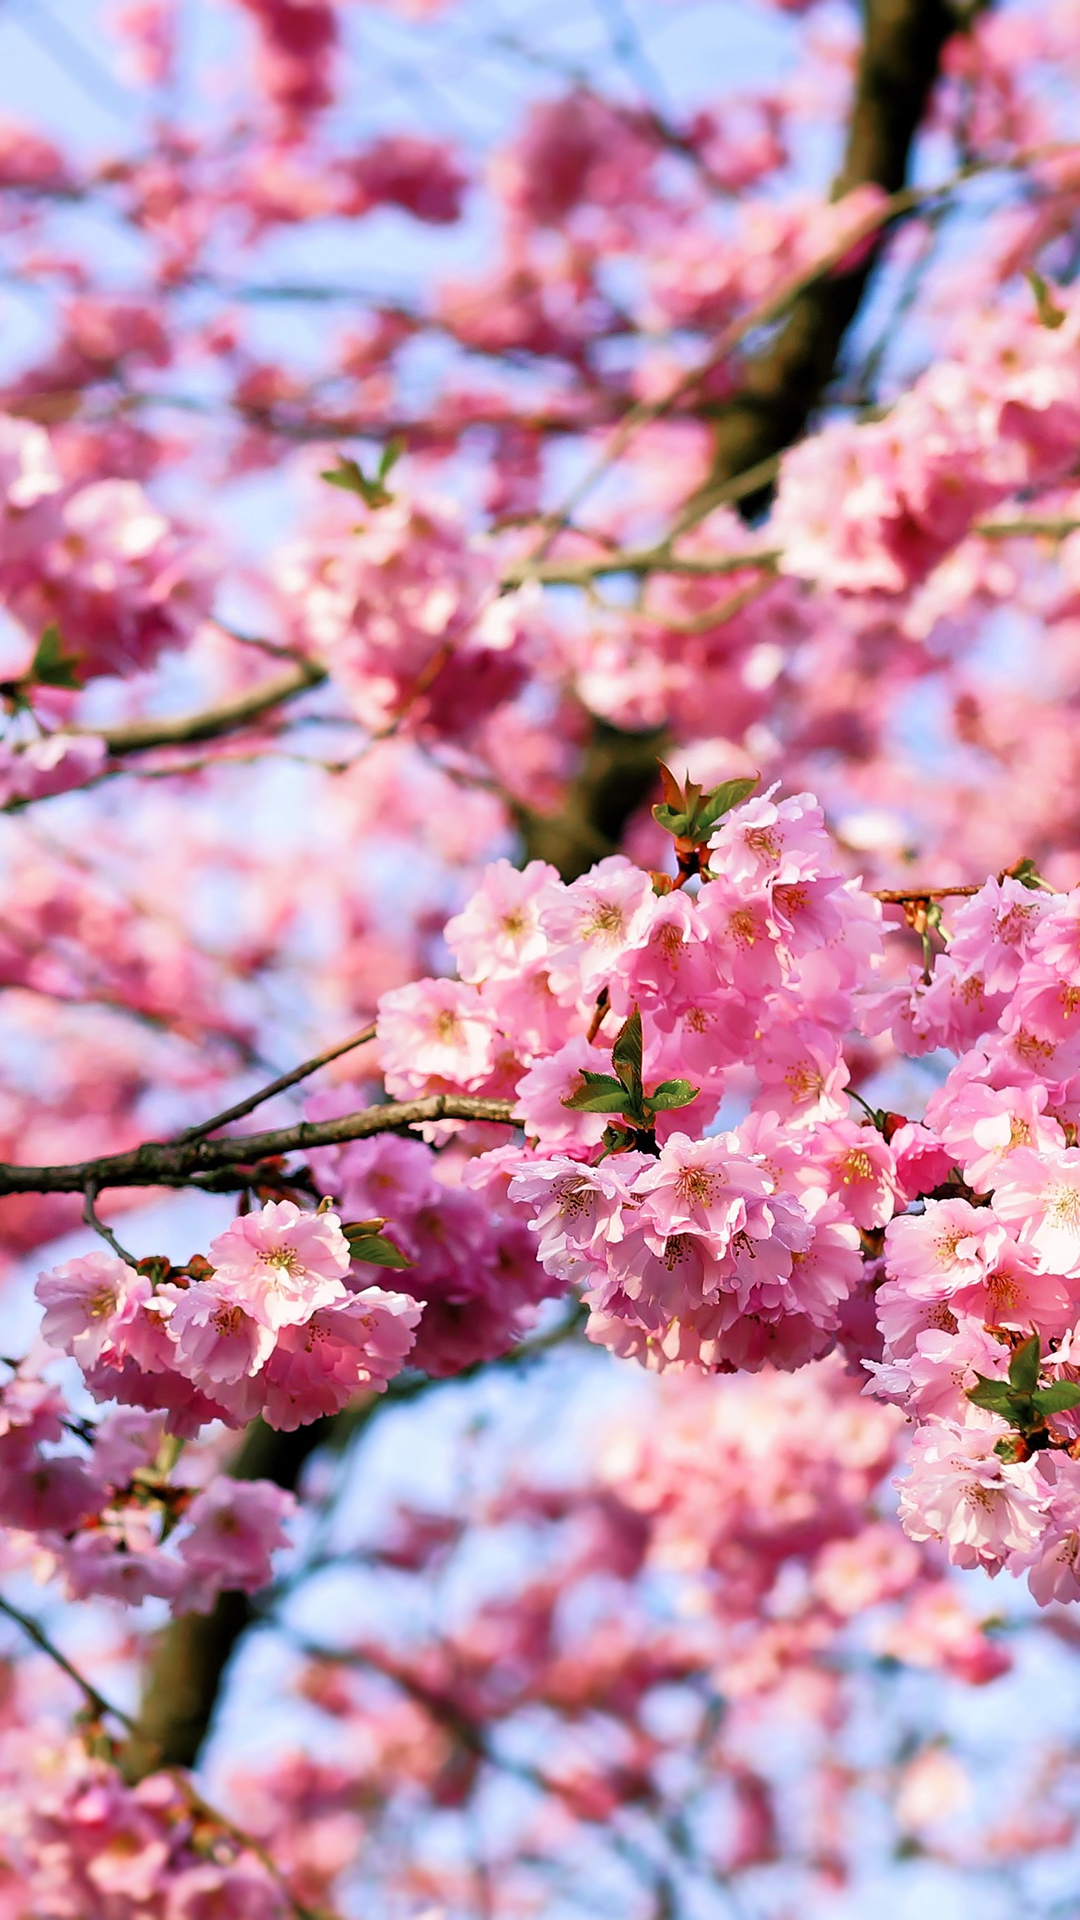 Wallpapers Cherry Blossom Free Hd Cherry Blossom Tree Phone Wallpaper 1141